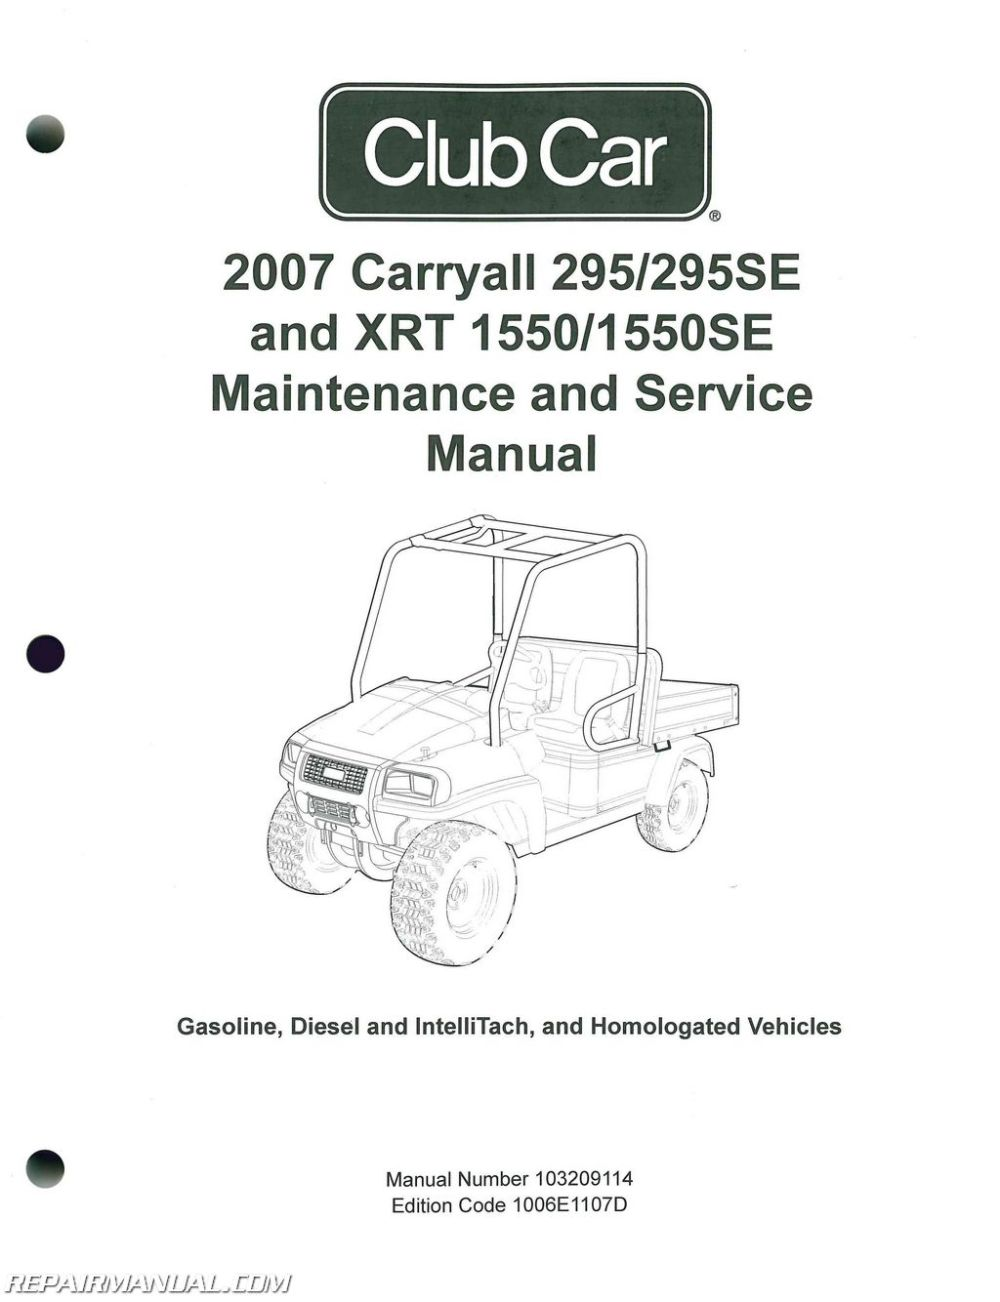 medium resolution of 2007 club car carryall service manual 295 295se xrt 1550 club car xrt 1550 wiring diagram